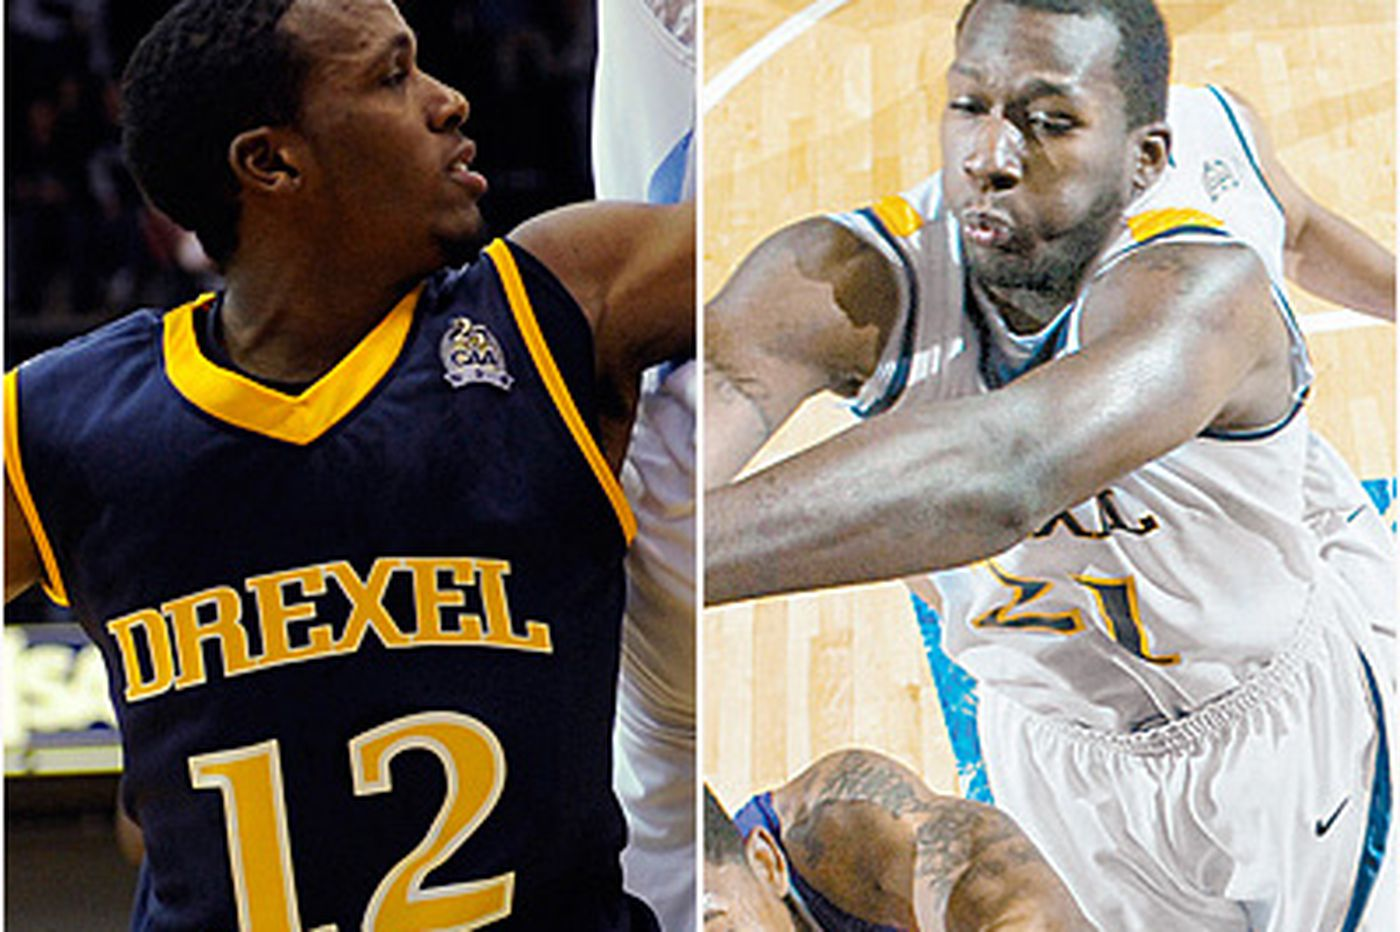 Drexel hoopsters sought in robbery